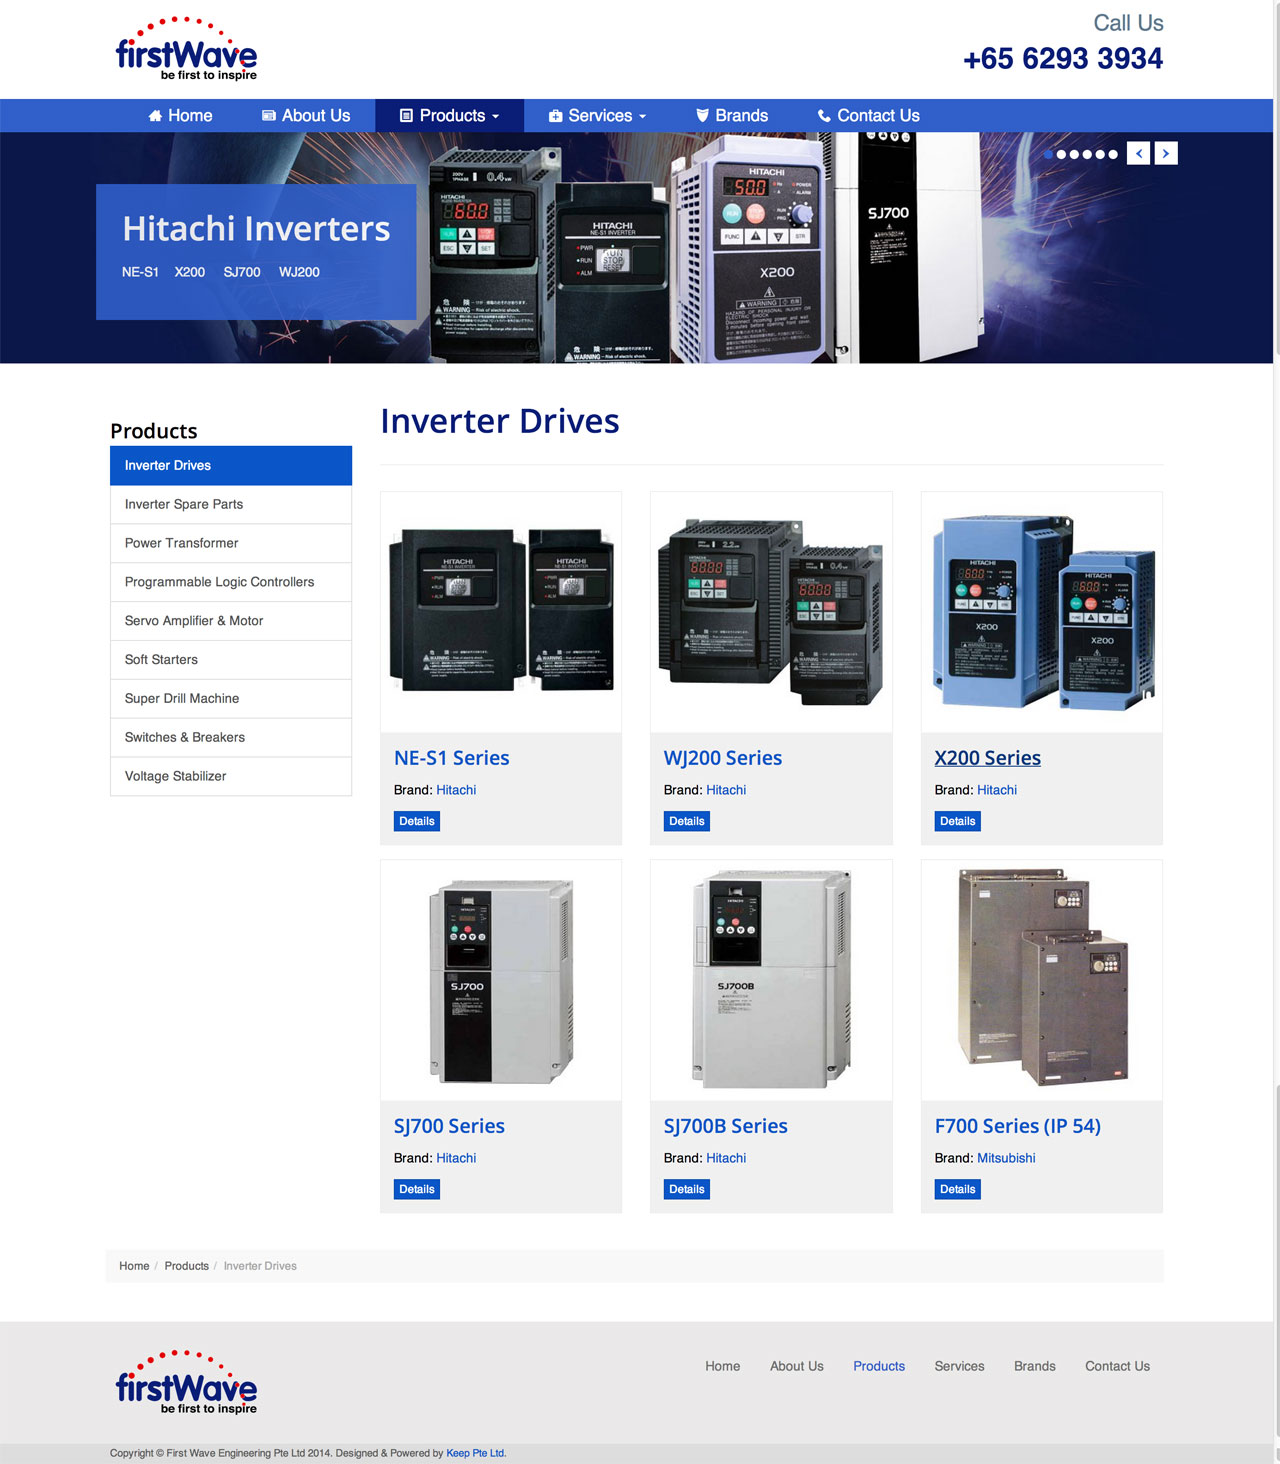 First Wave Engineering Pte. Ltd. website products page